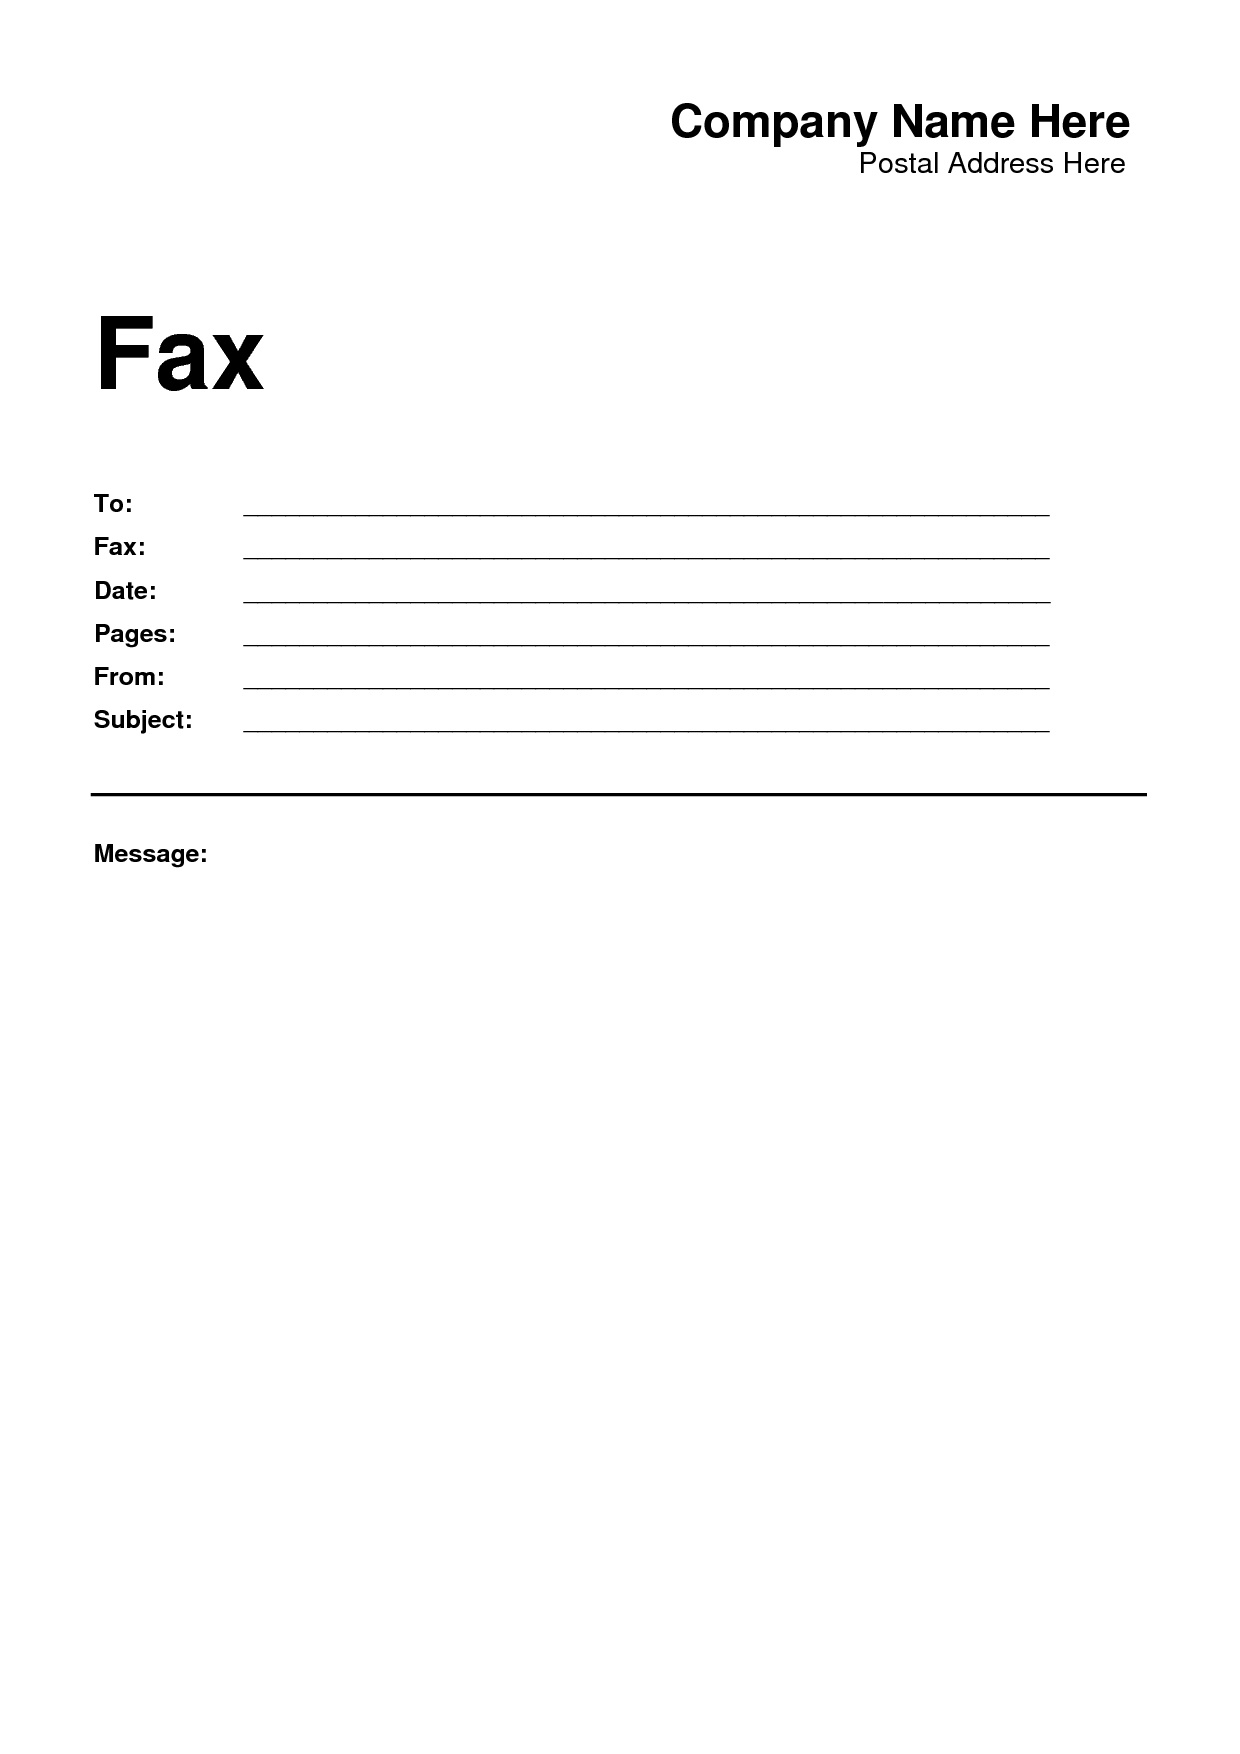 Printable Fax Cover Sheet Template - Radiodignidad - Free Printable Cover Letter For Fax